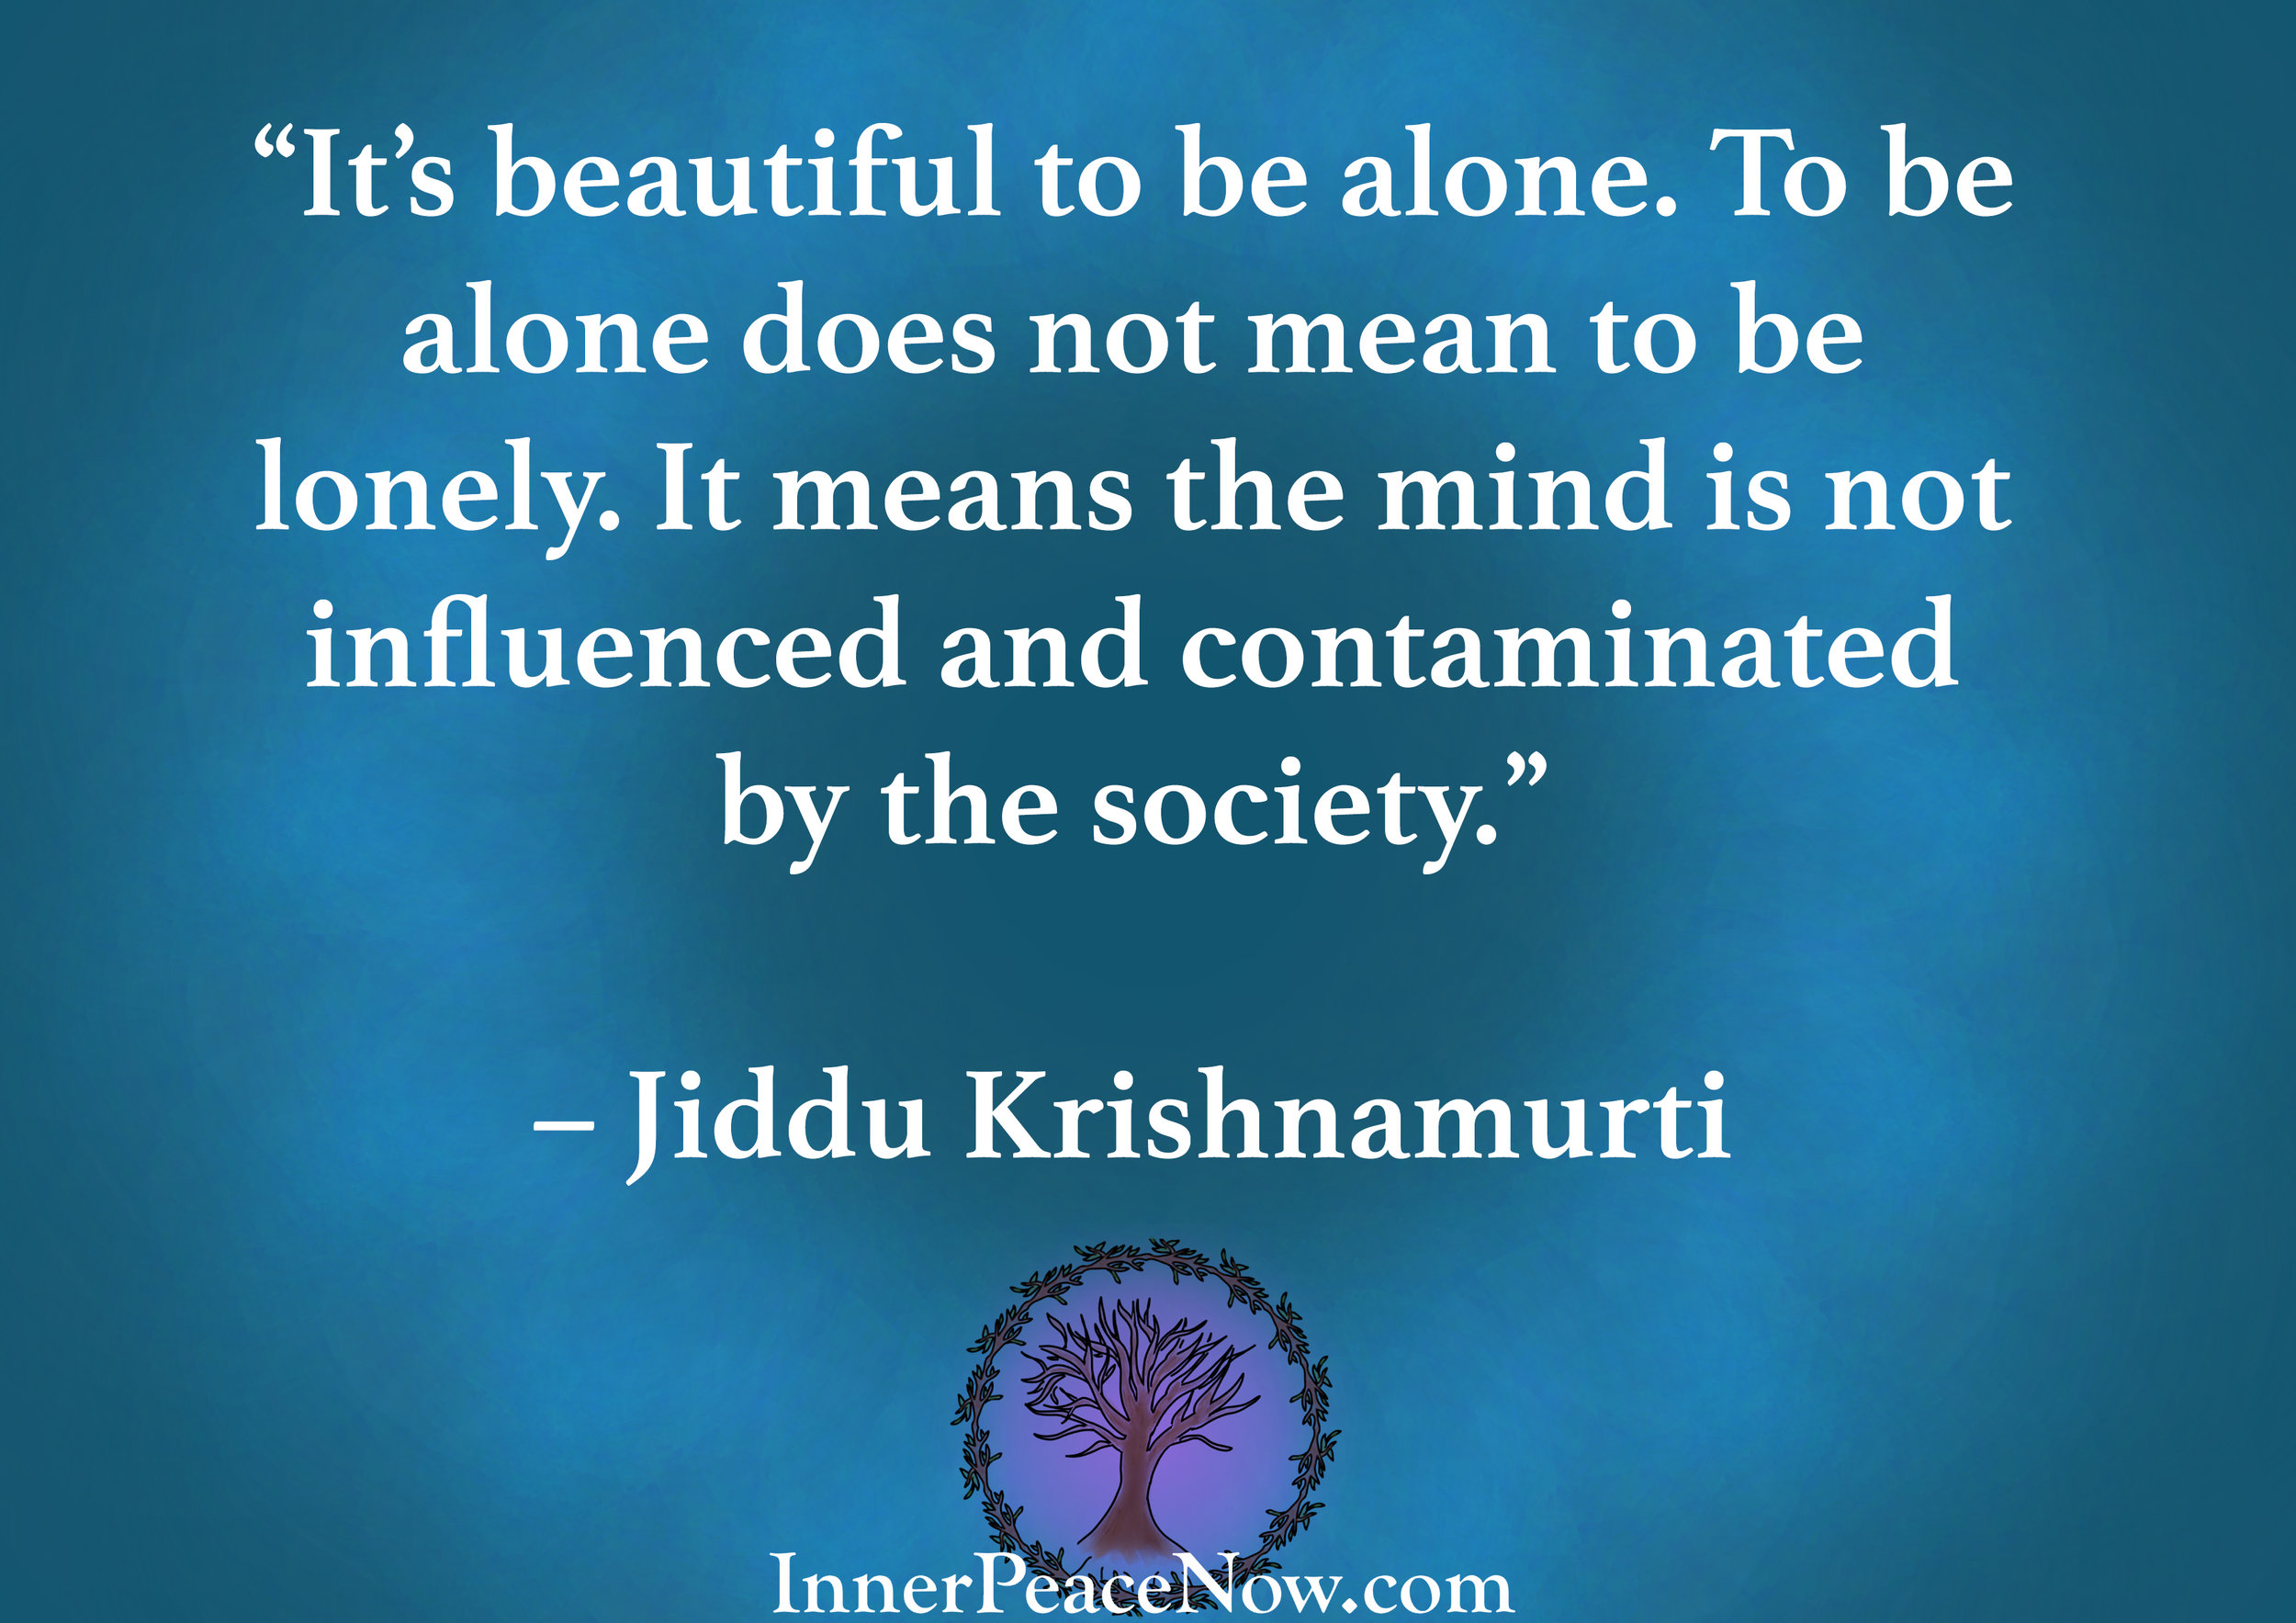 How to deal with loneliness quote by Jiddu Krishnamurti...